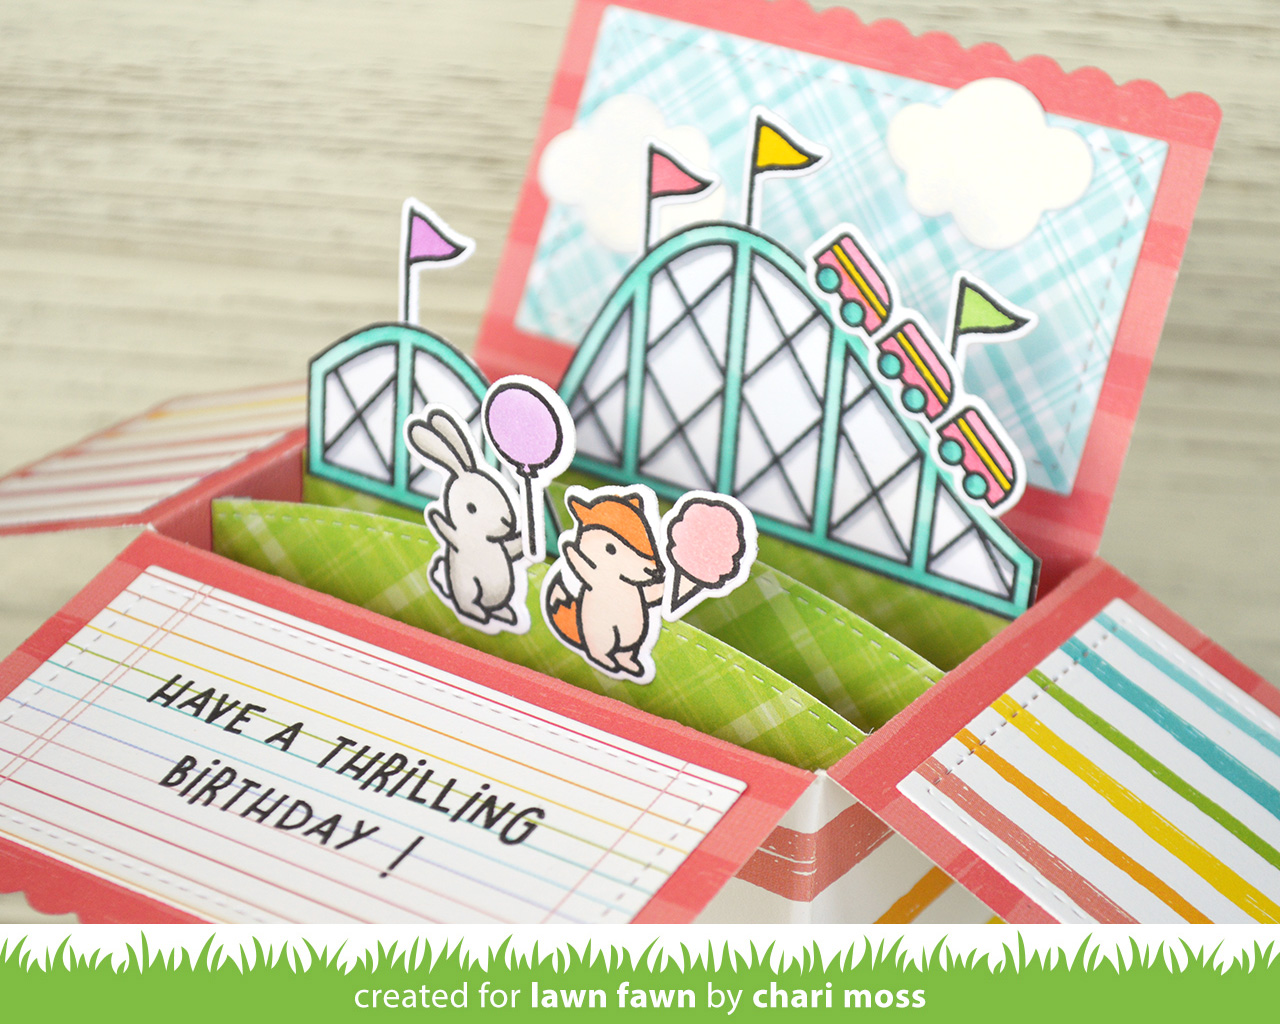 Thrilling Scalloped Box Card Pop-Up